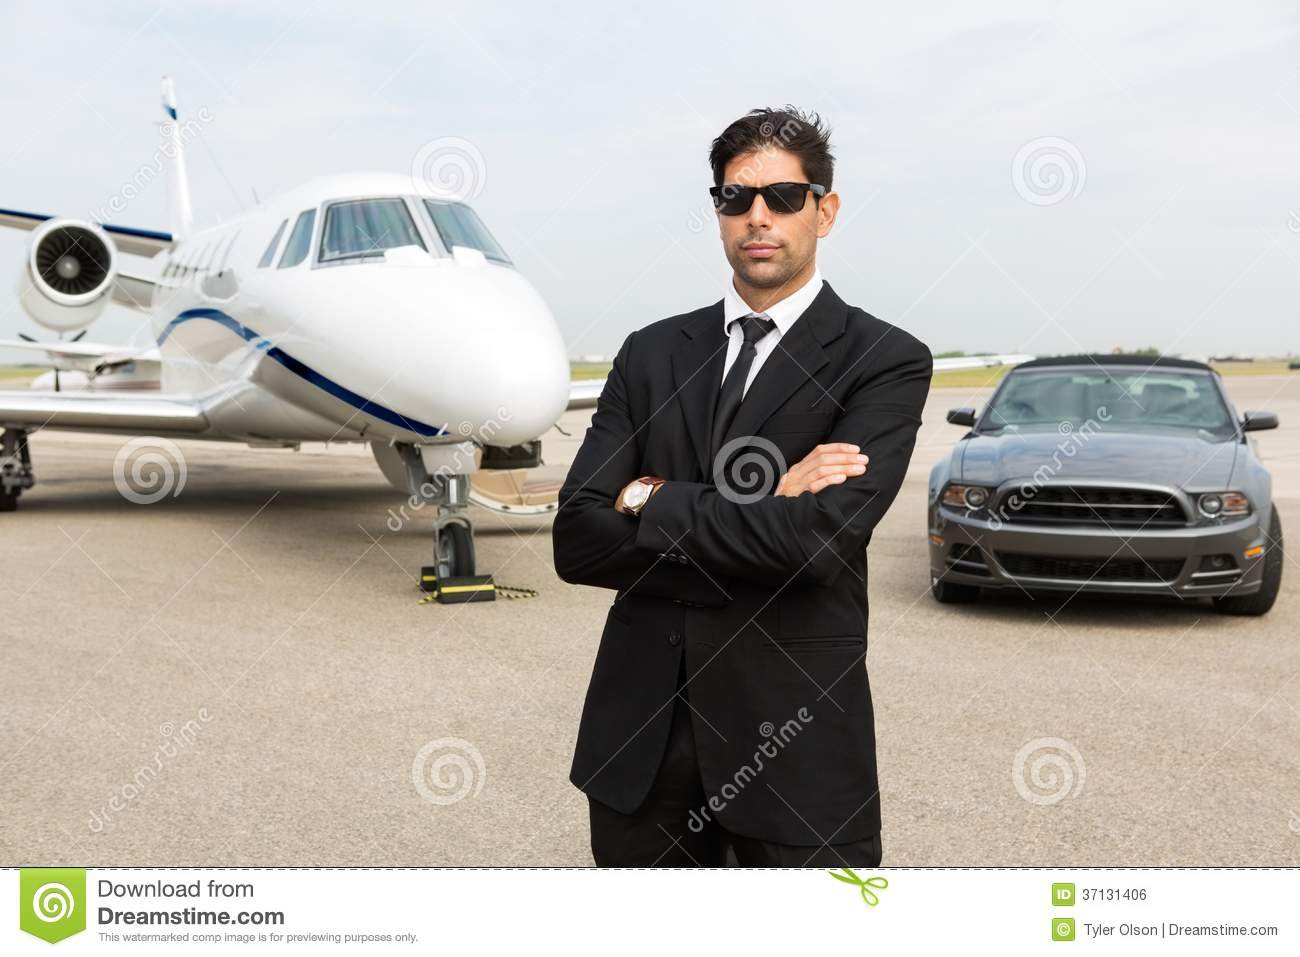 Homem de negócios Standing In Front Of Car And Private